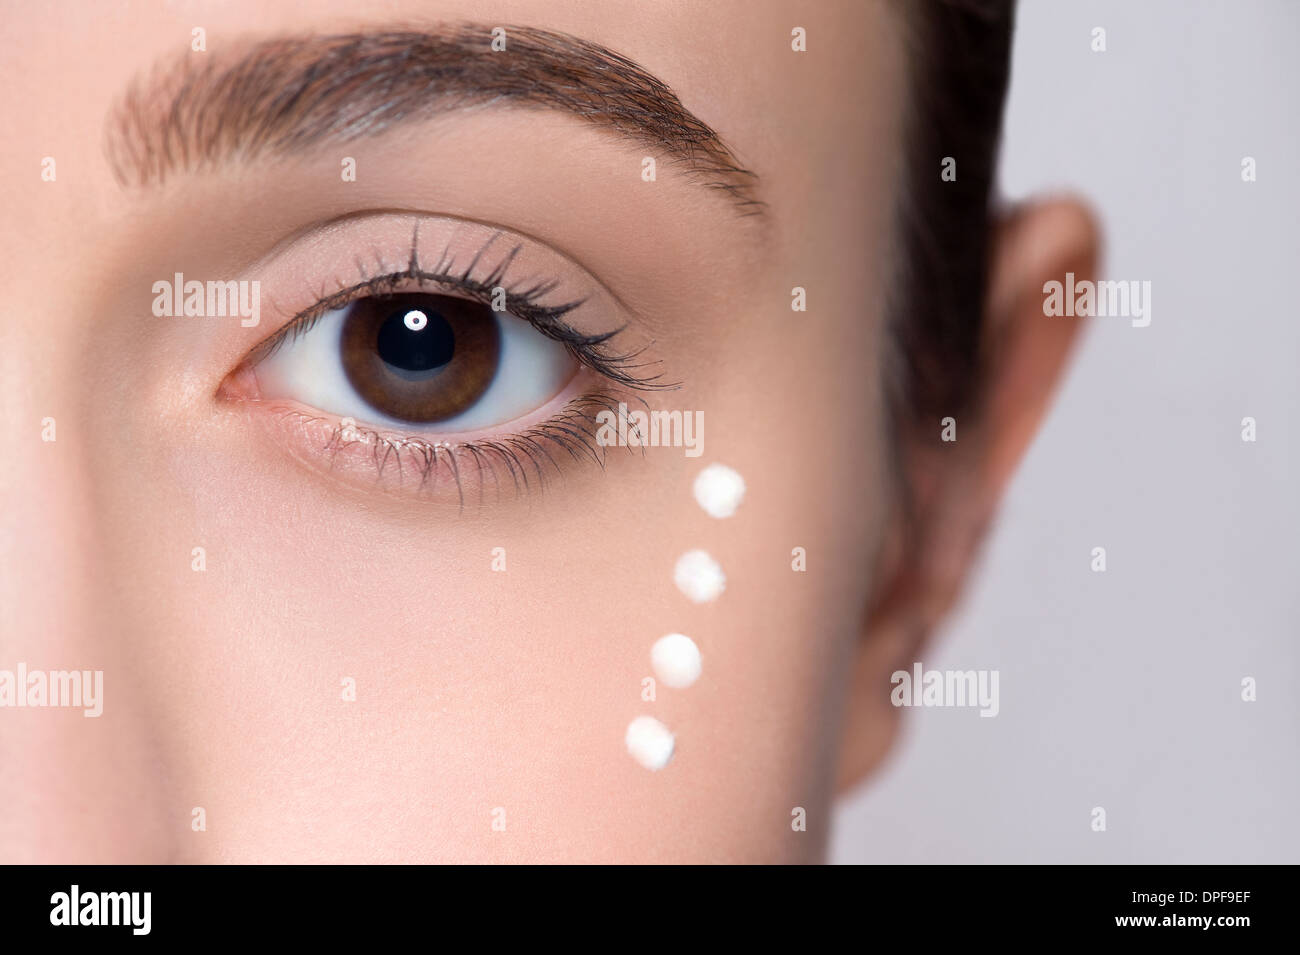 Cropped studio shot of young woman's eye - Stock Image